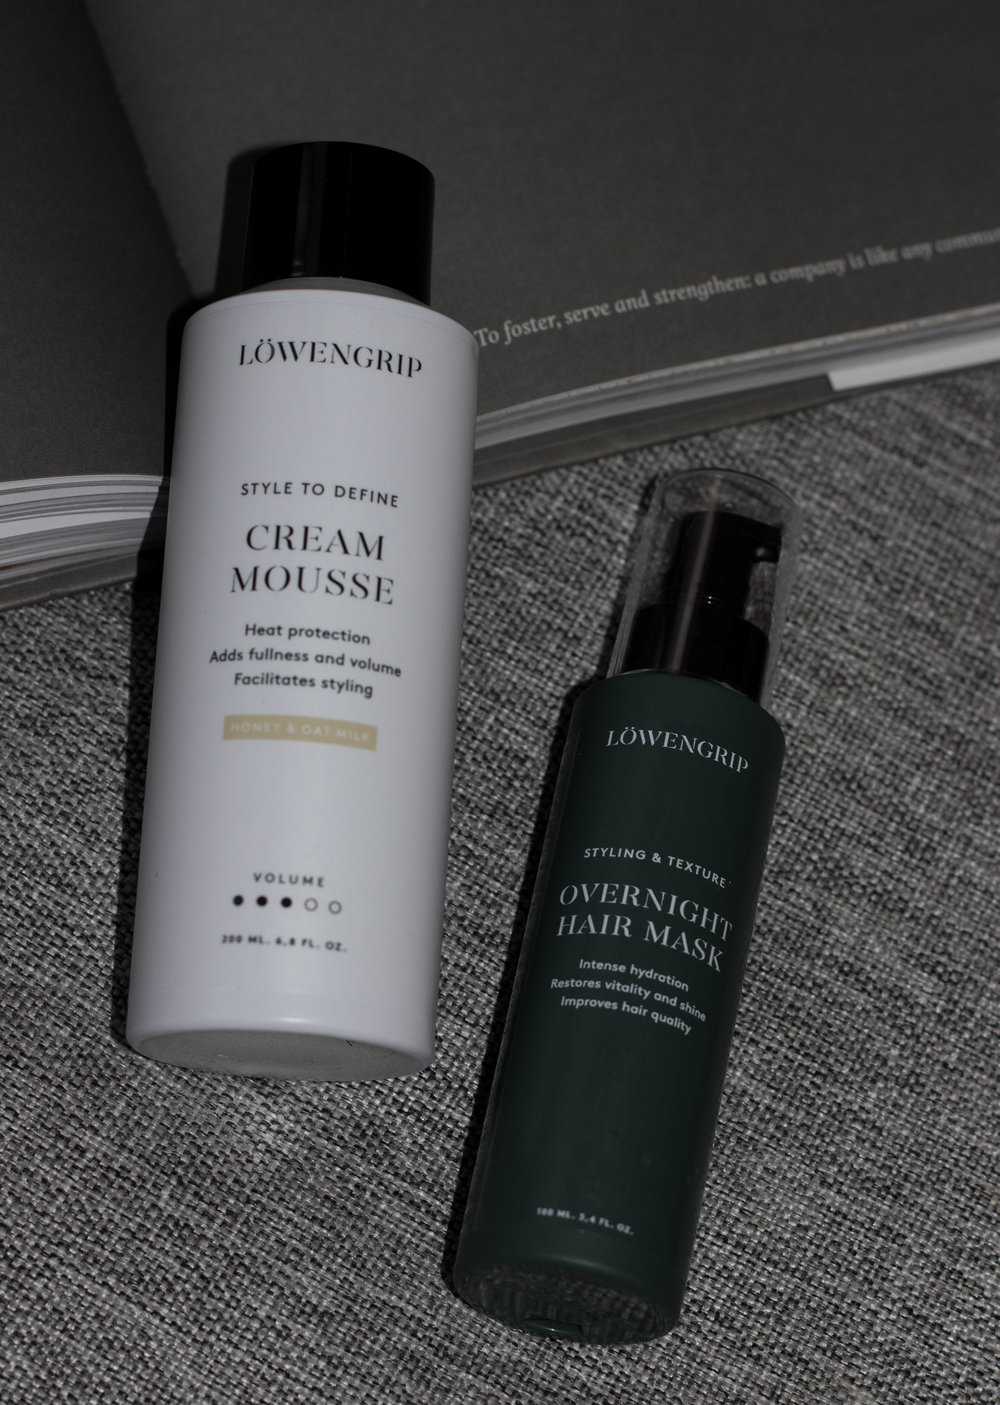 löwengrip_lowengrip_about_that_look_haircare_overnightharimask